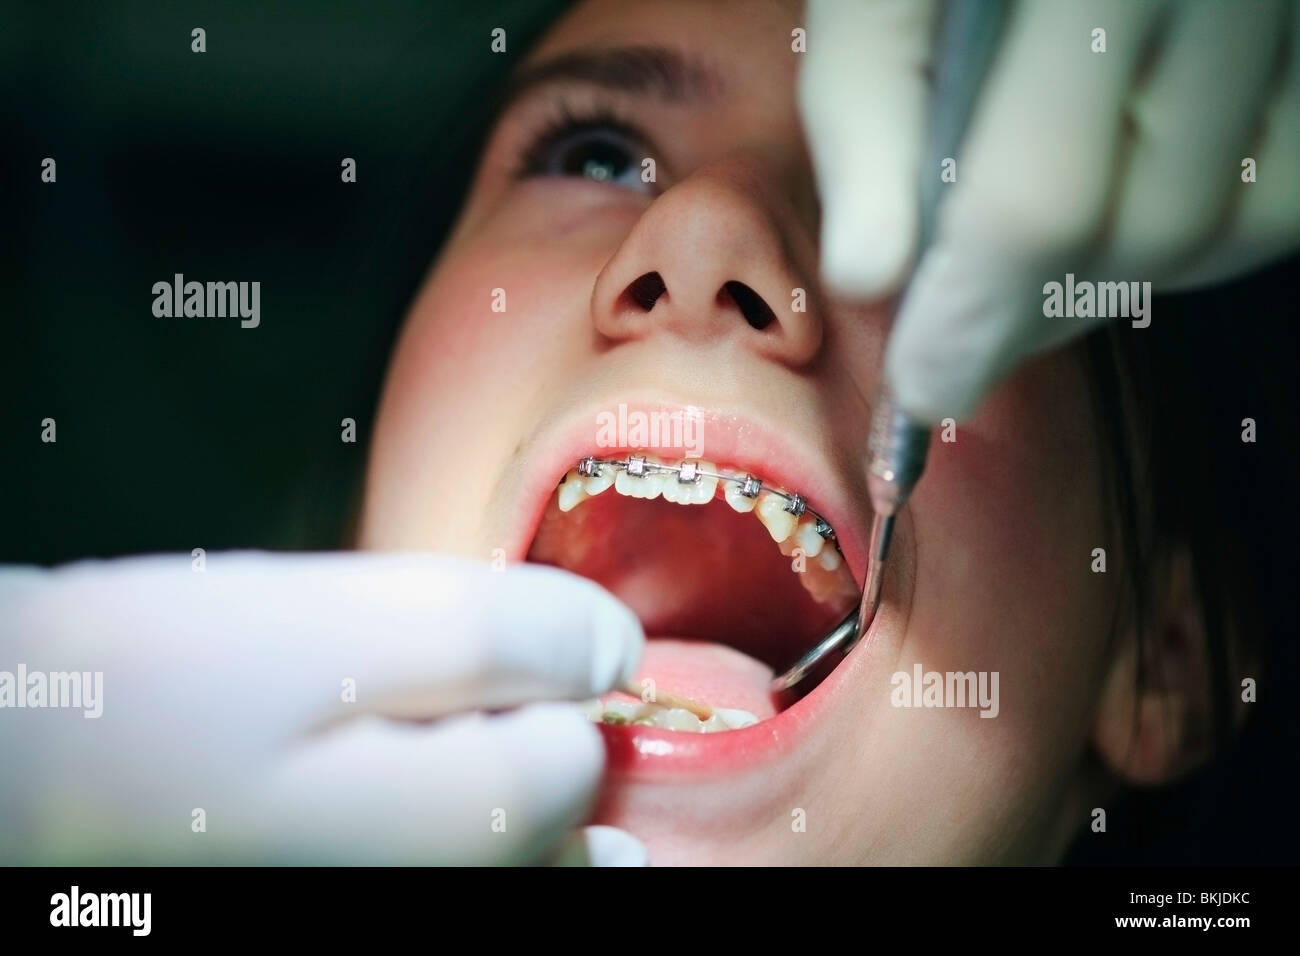 A Teenager With Braces Having Their Mouth Examined By The Dentist Stock Photo